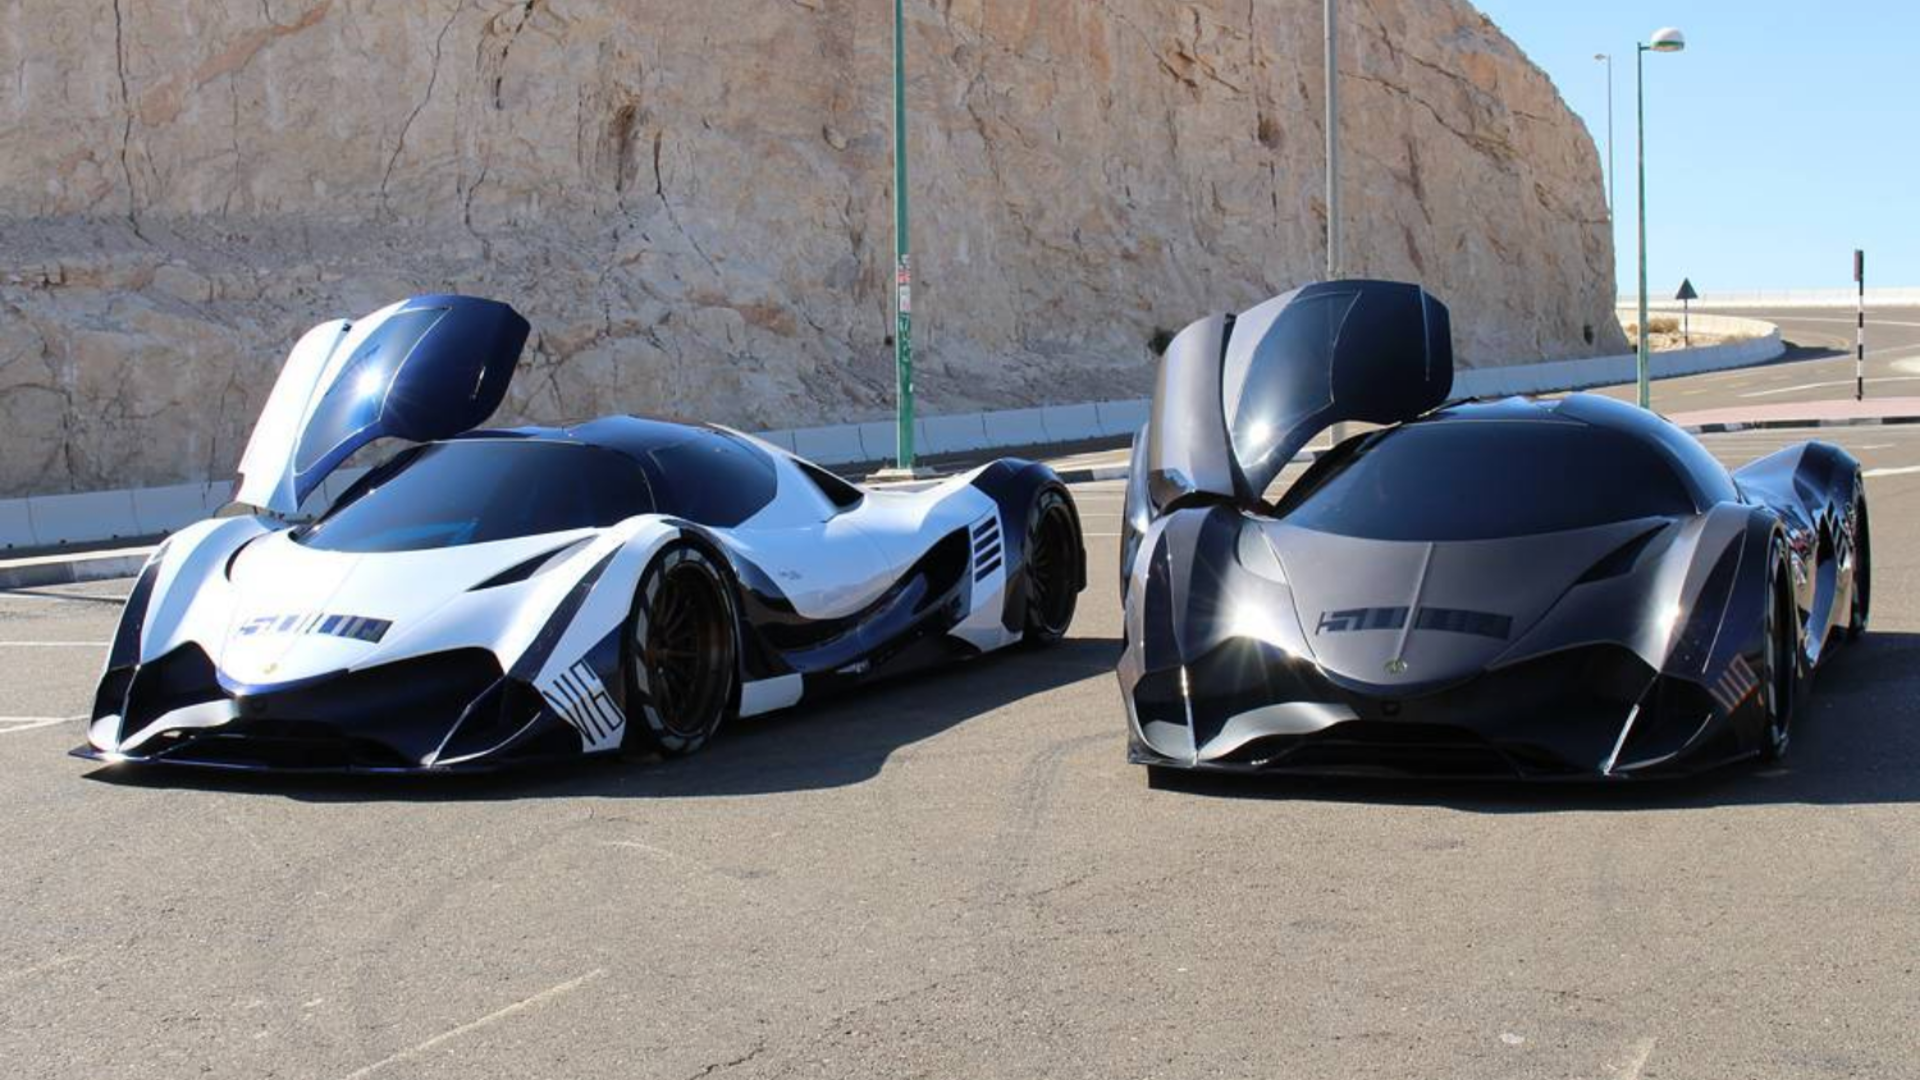 2020 Devel Sixteen – 320mph plus claimed